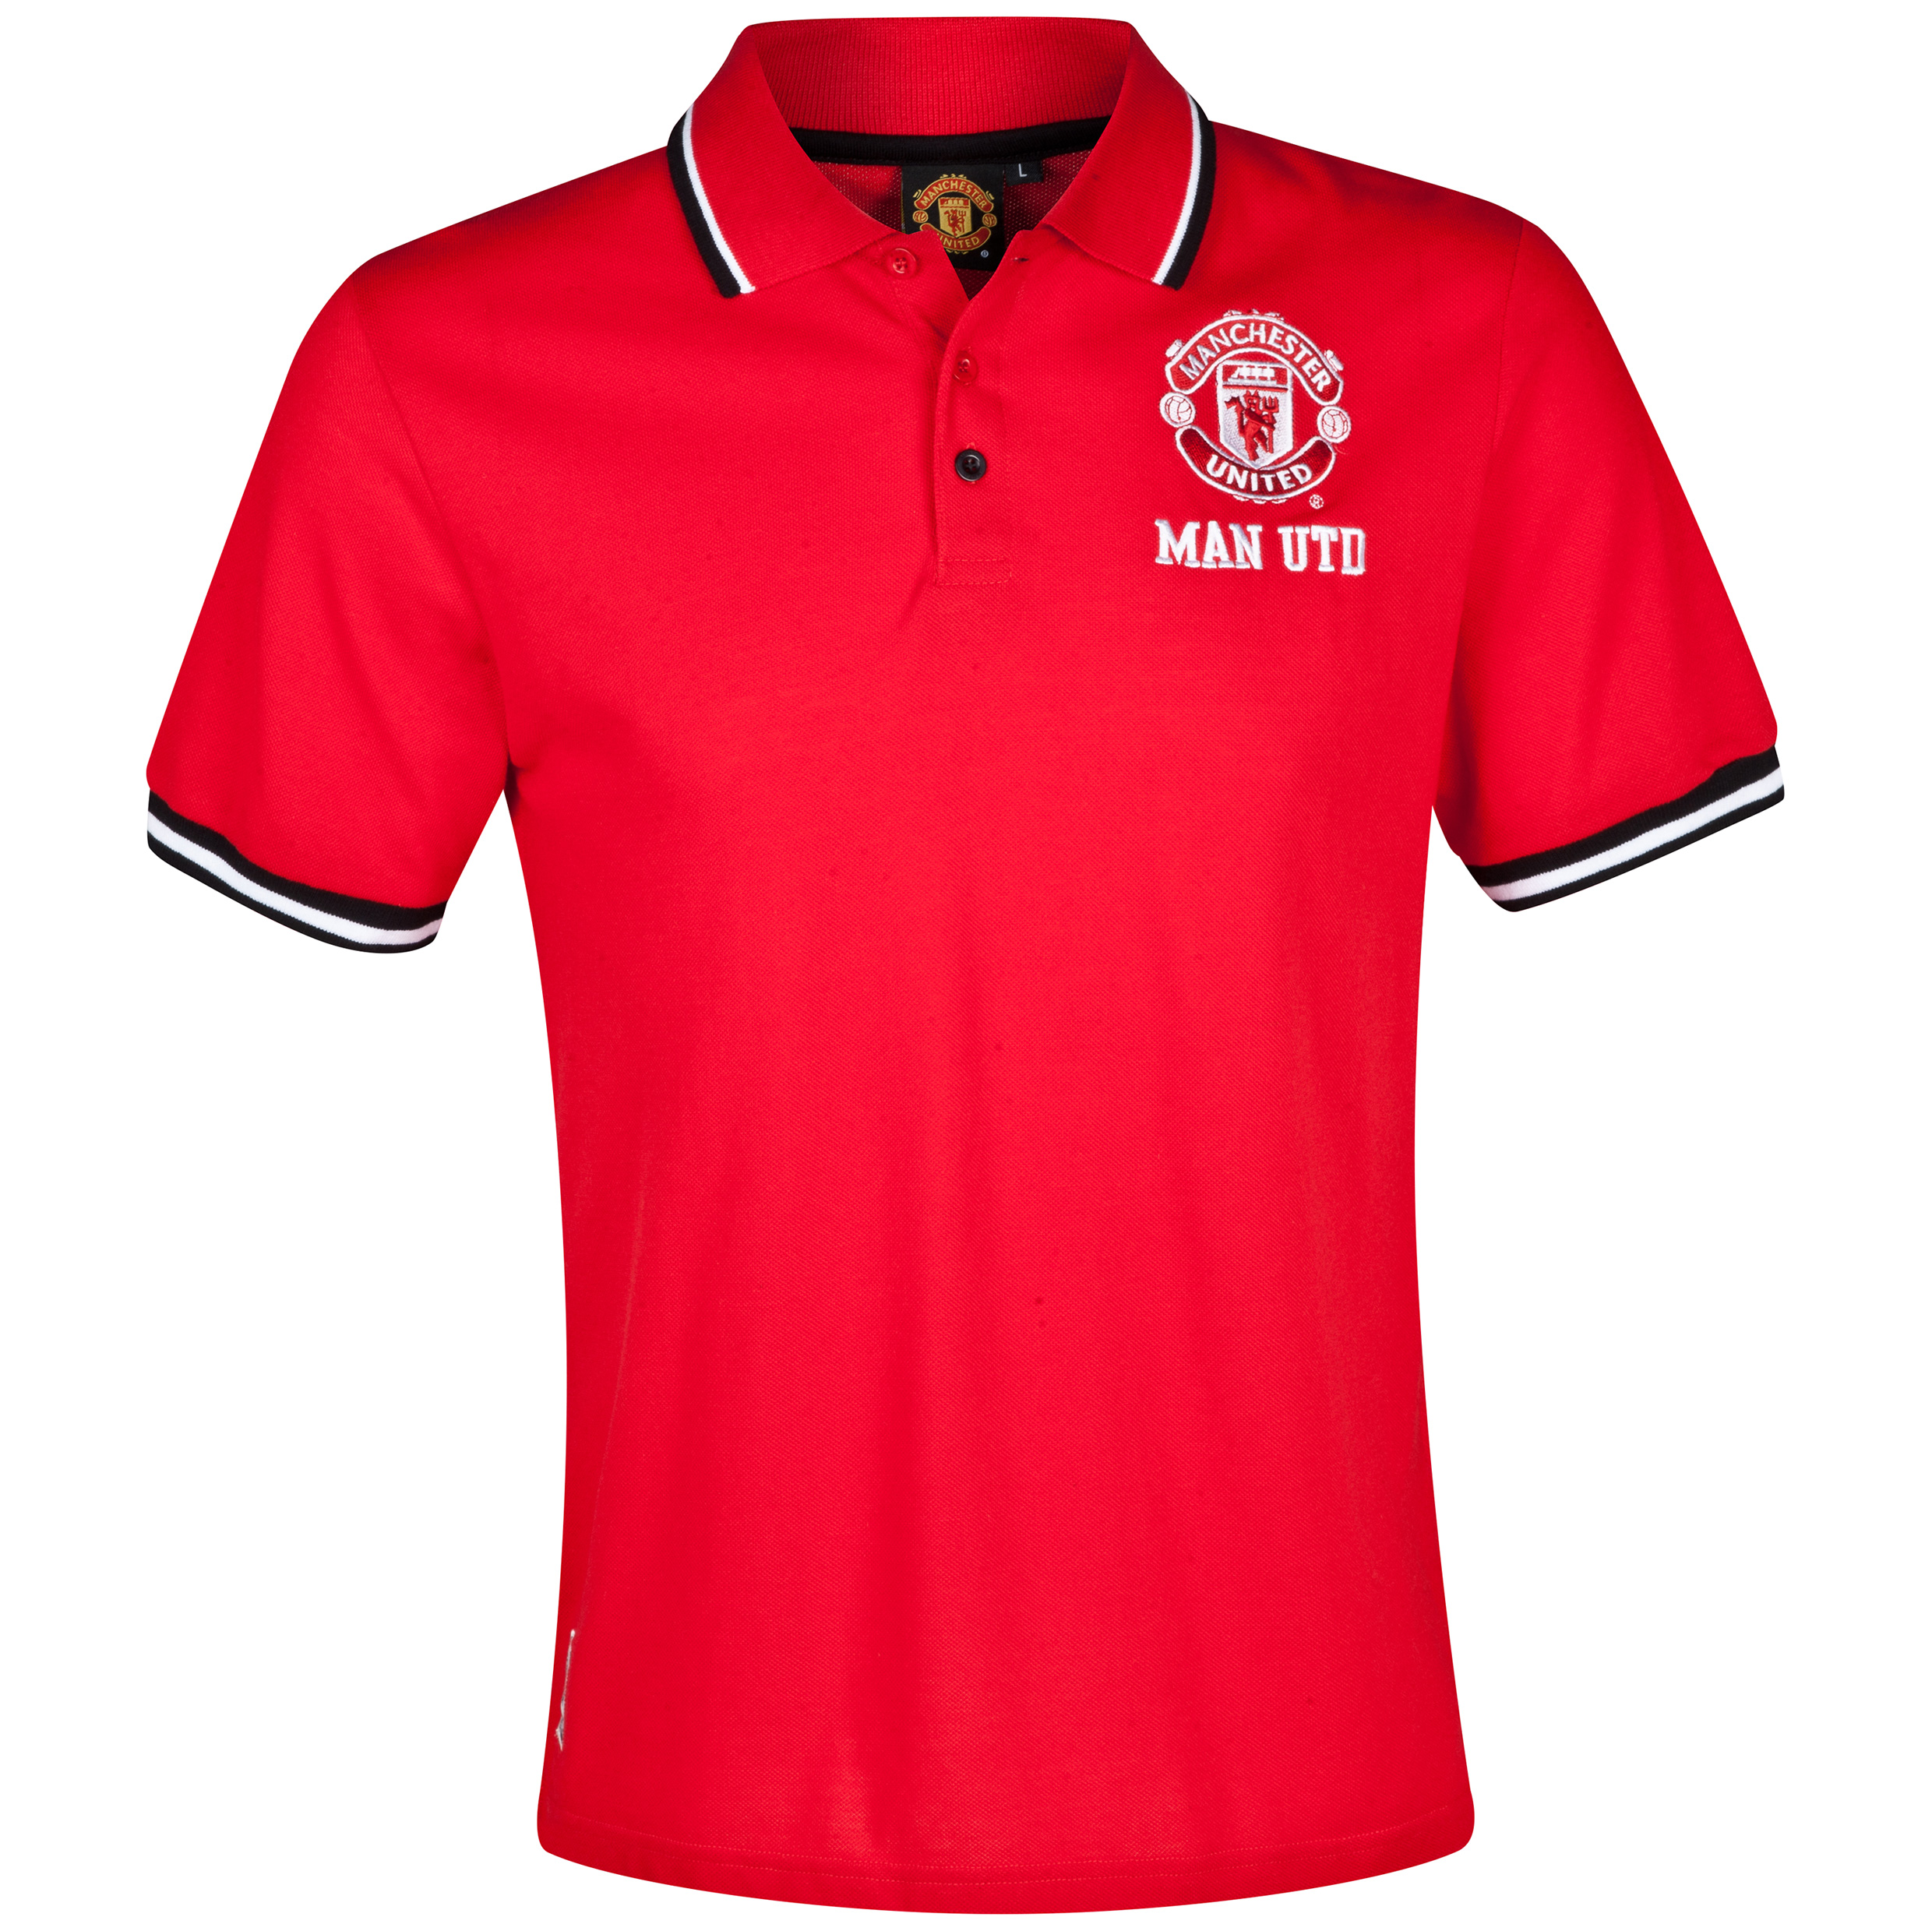 Manchester United Tipped Polo Shirt  - Mens Red